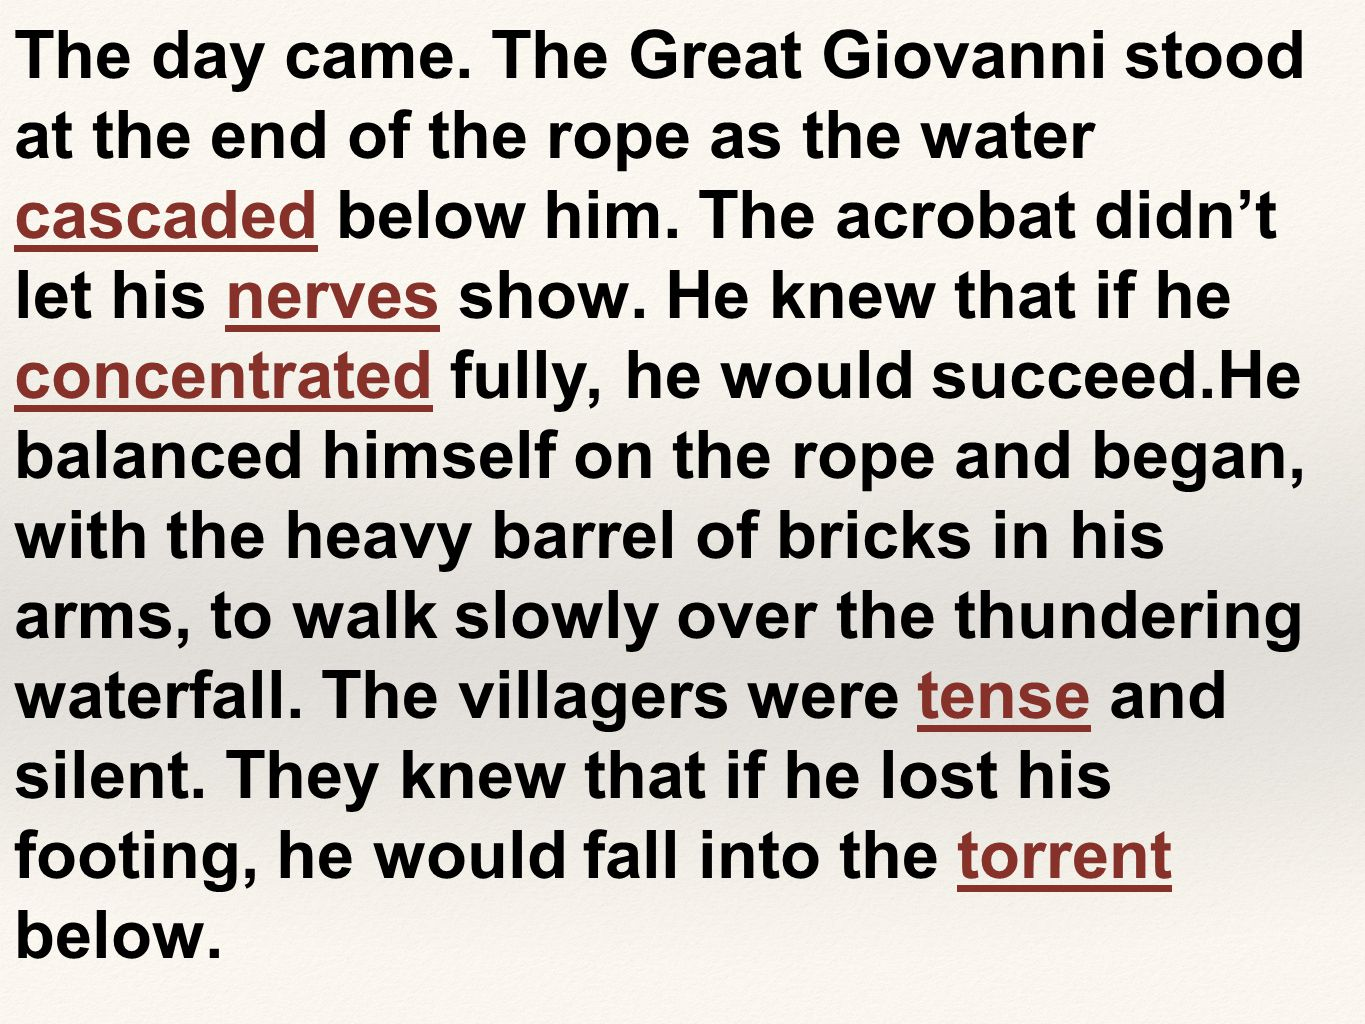 The day came. The Great Giovanni stood at the end of the rope as the water cascaded below him.